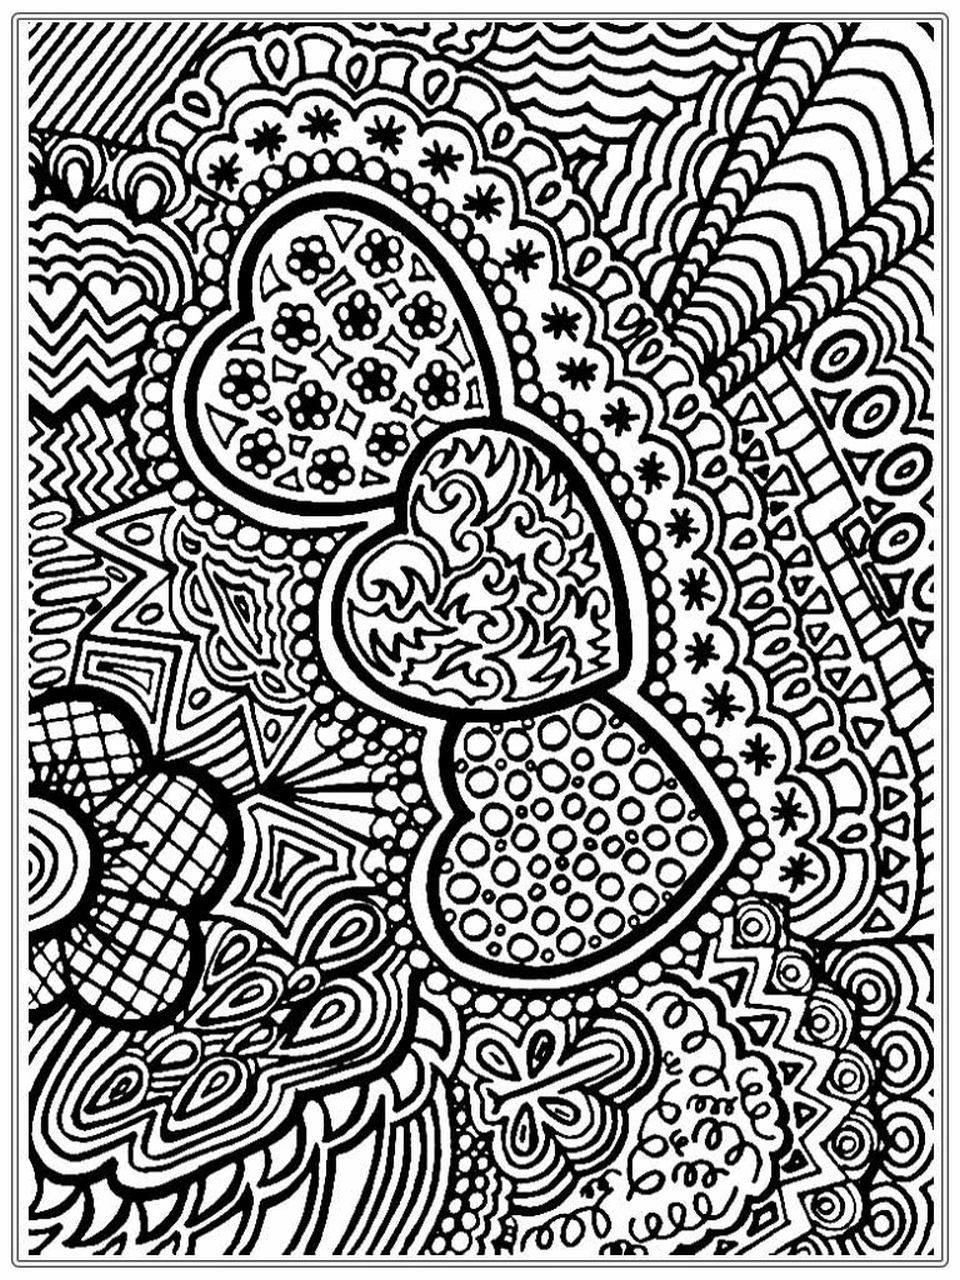 hard adult abstract coloring pages of heart pattern | Abstract ...